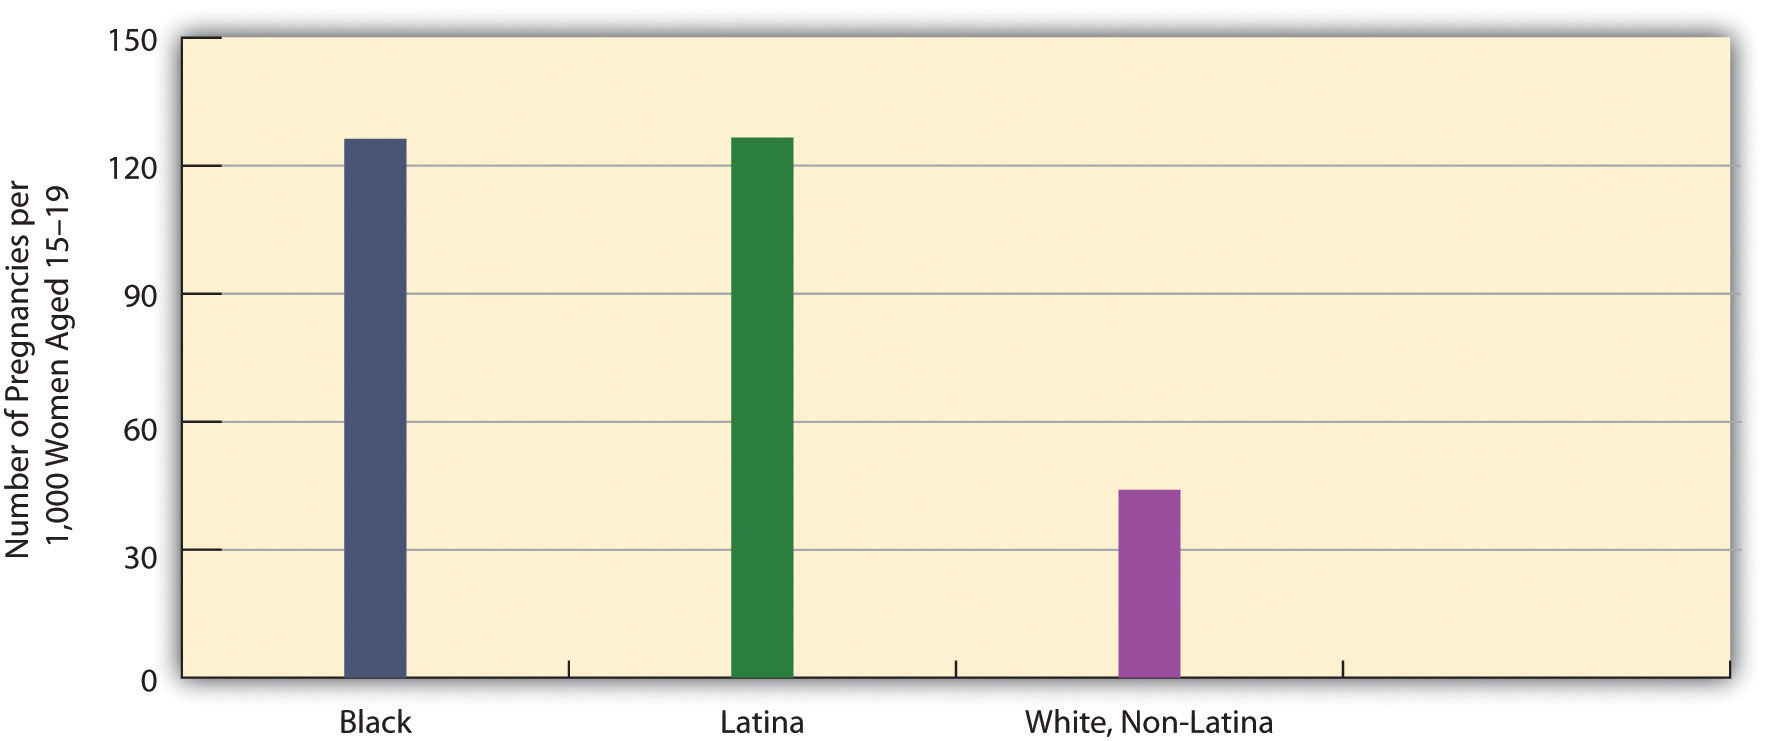 Race/Ethnicity and Teenage Pregnancy shows that most teenage pregnancies are black and latina students